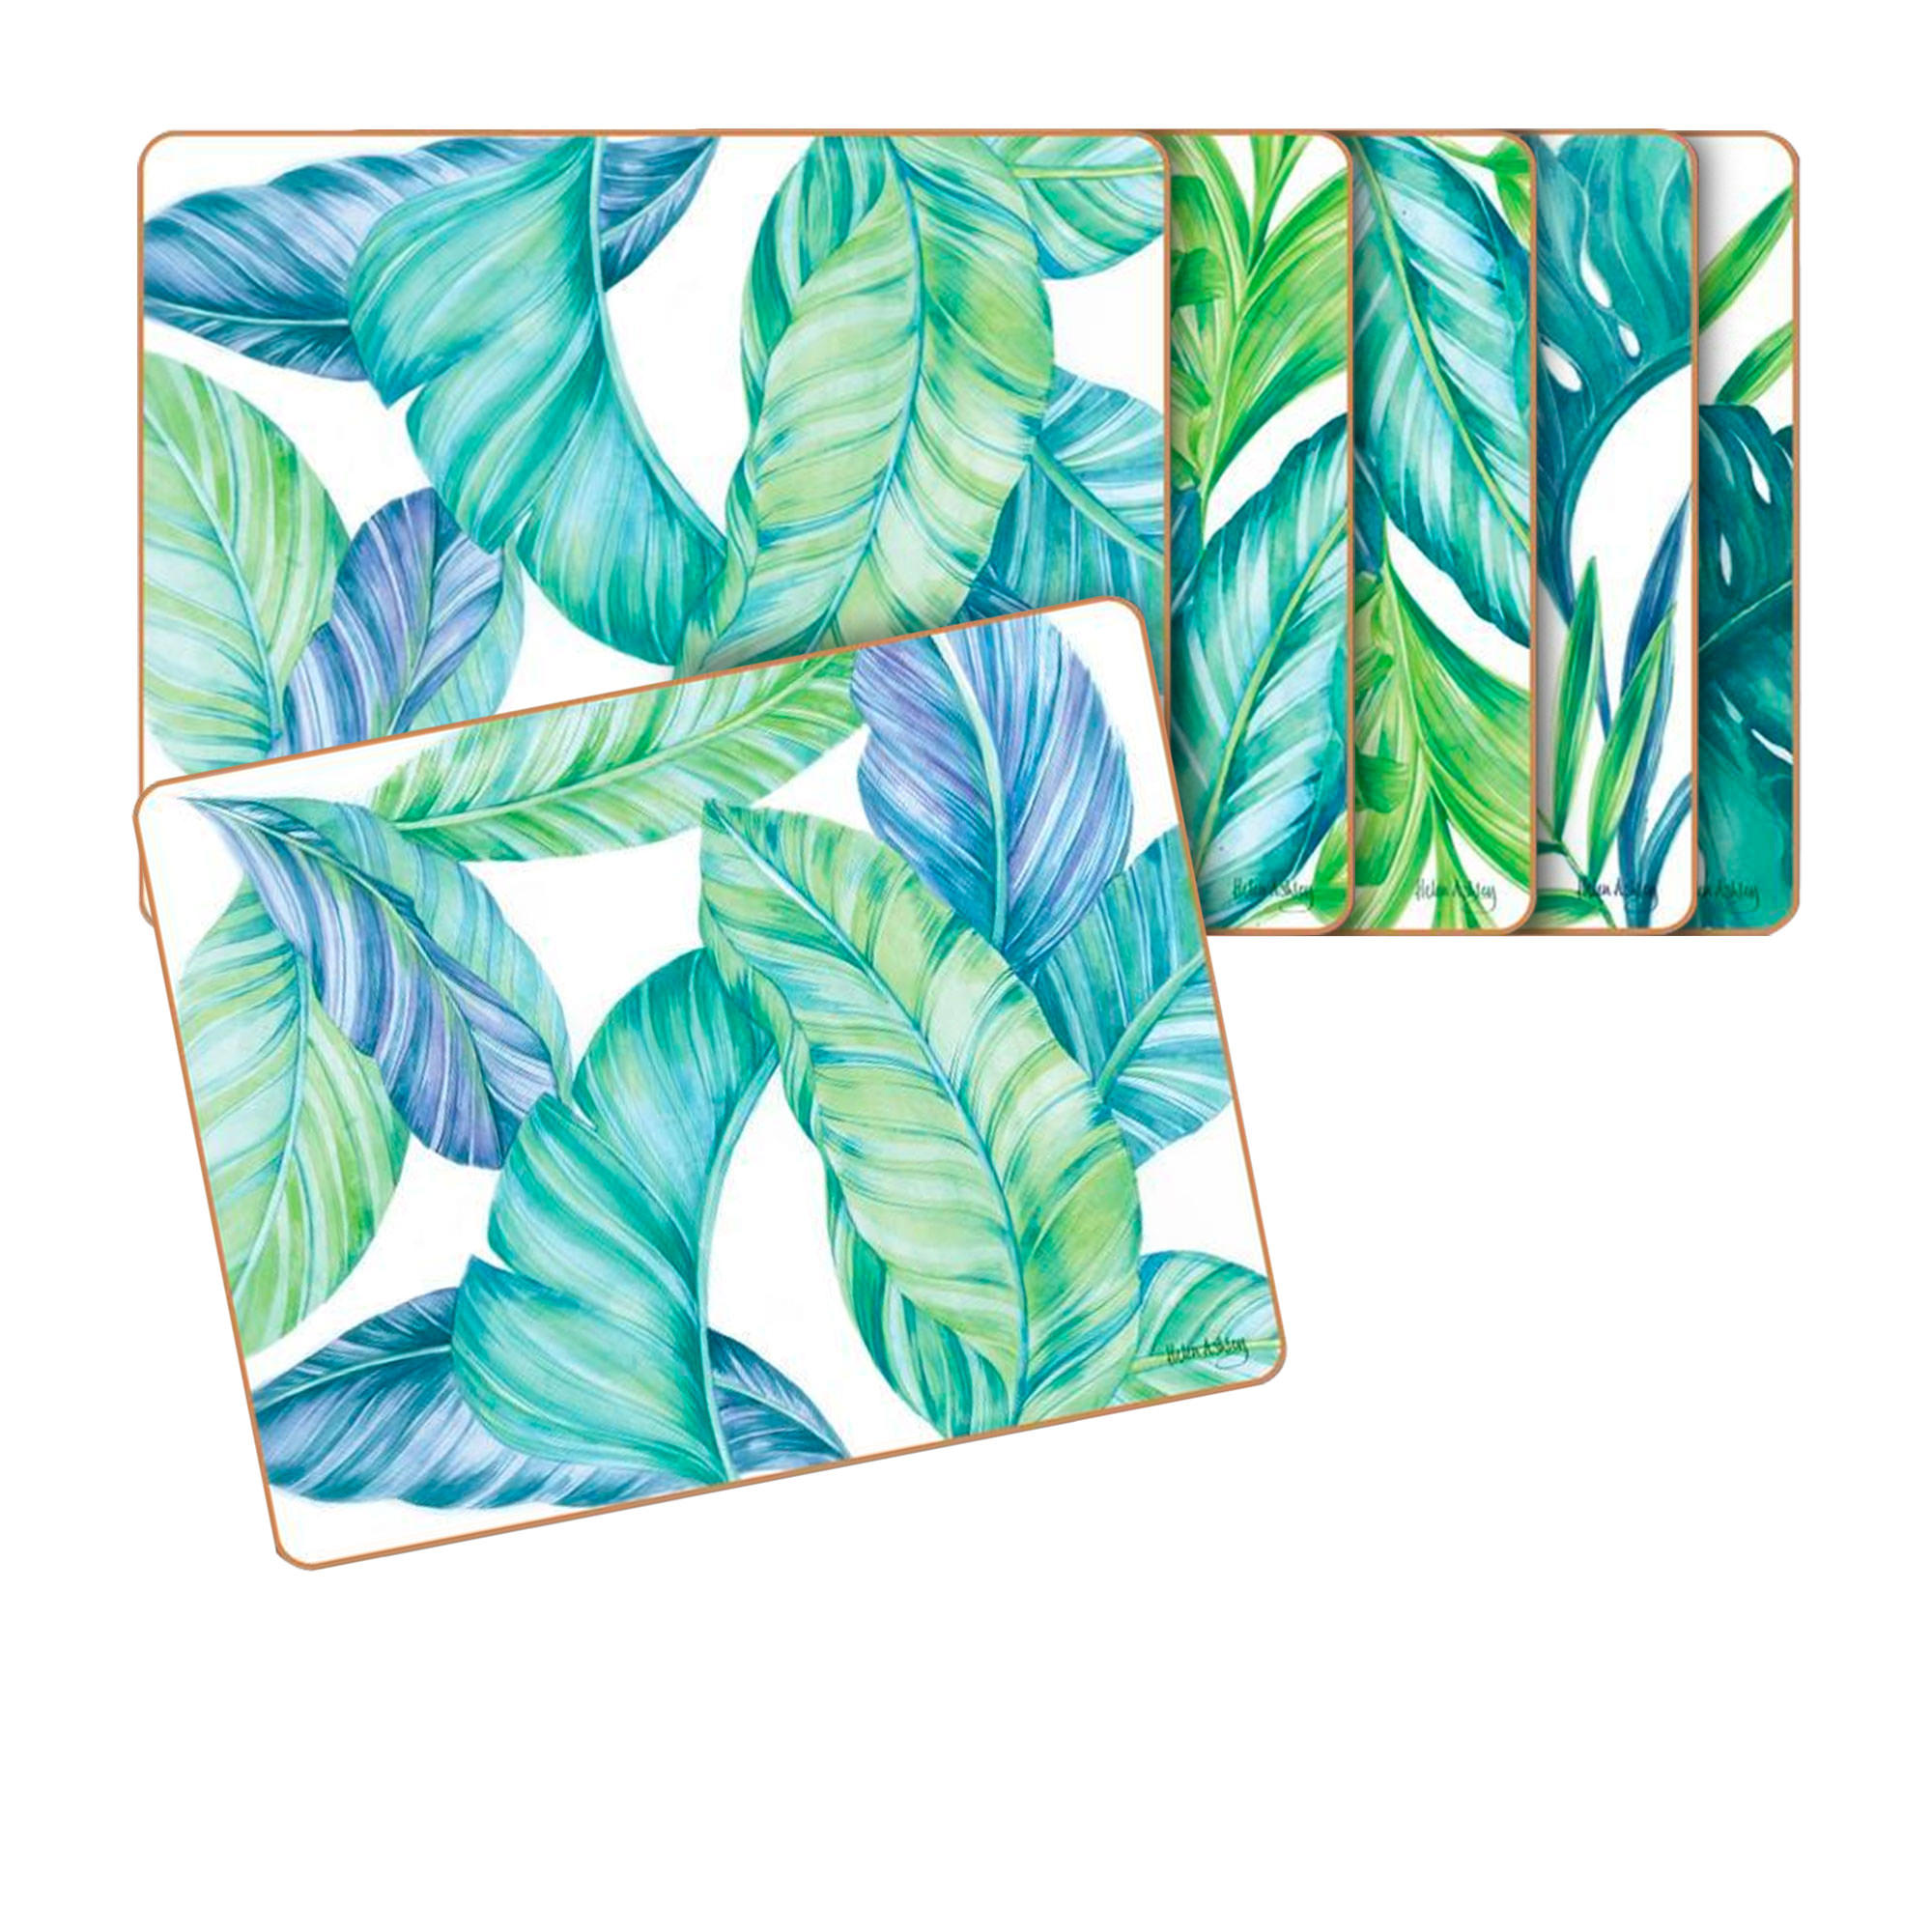 Cinnamon 6pc Tropical Leaves Placemat Set 34x26.5cm